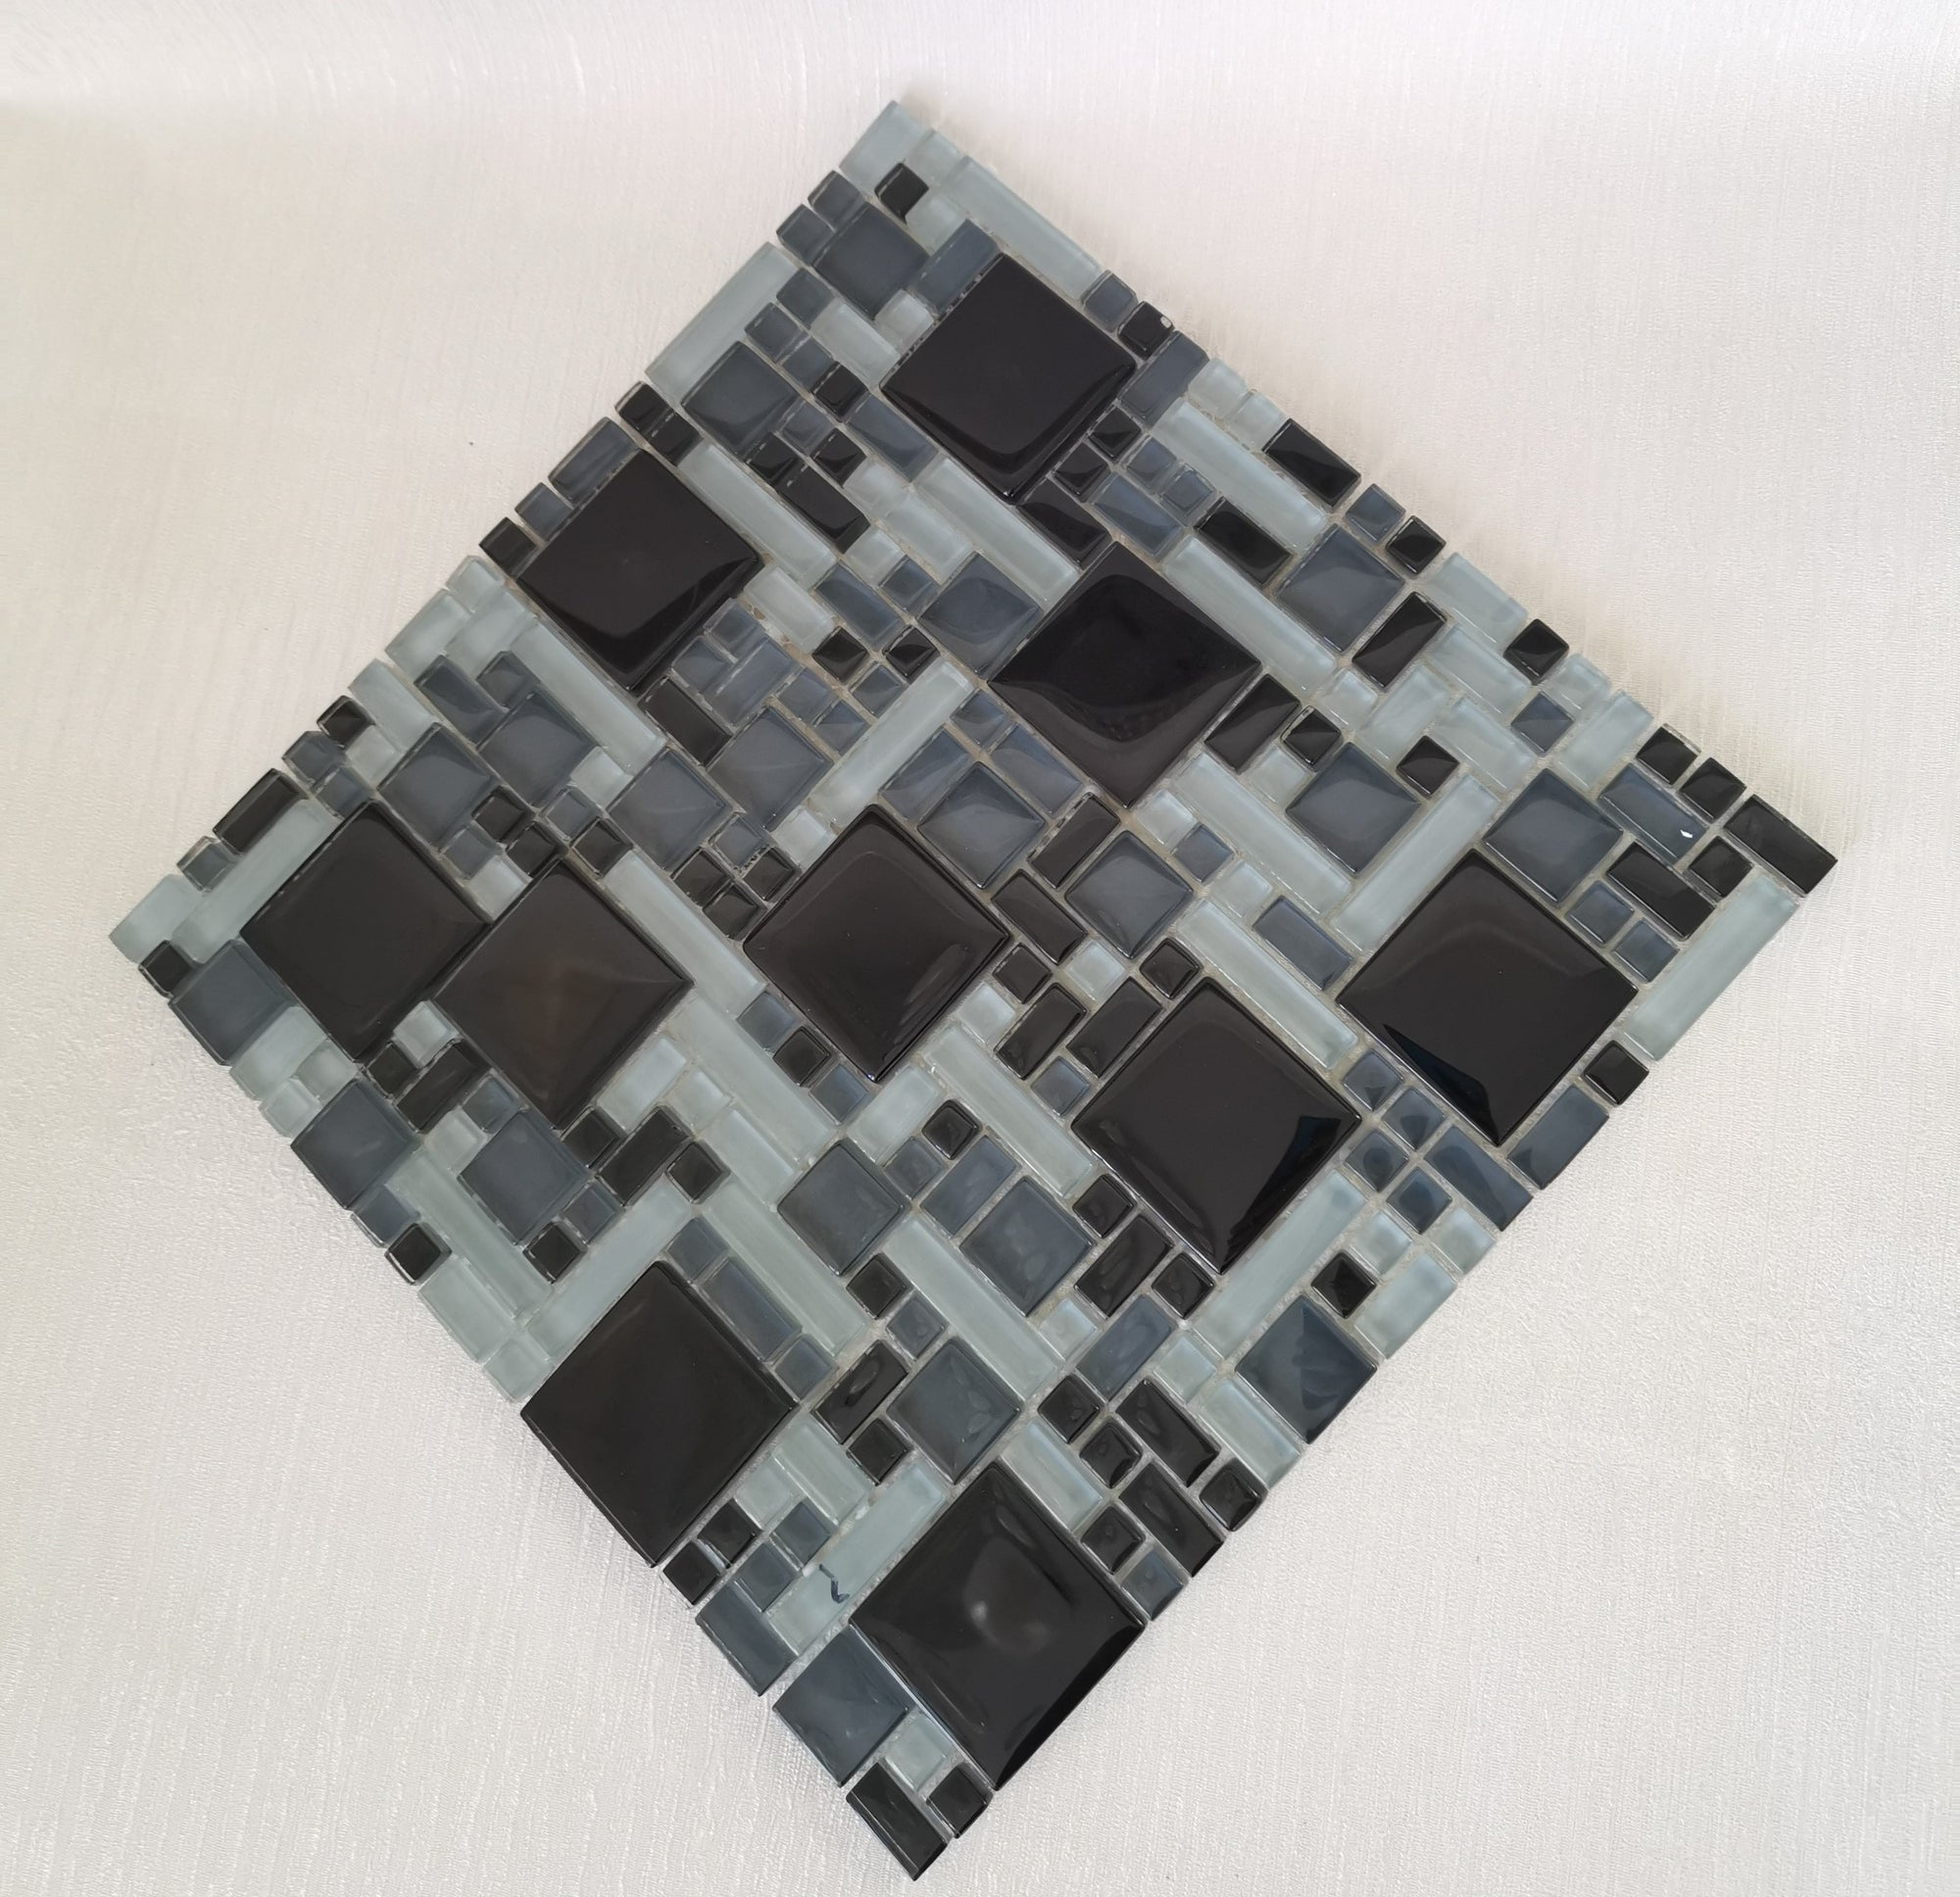 Black & Olive Geometric Mosaic Tile